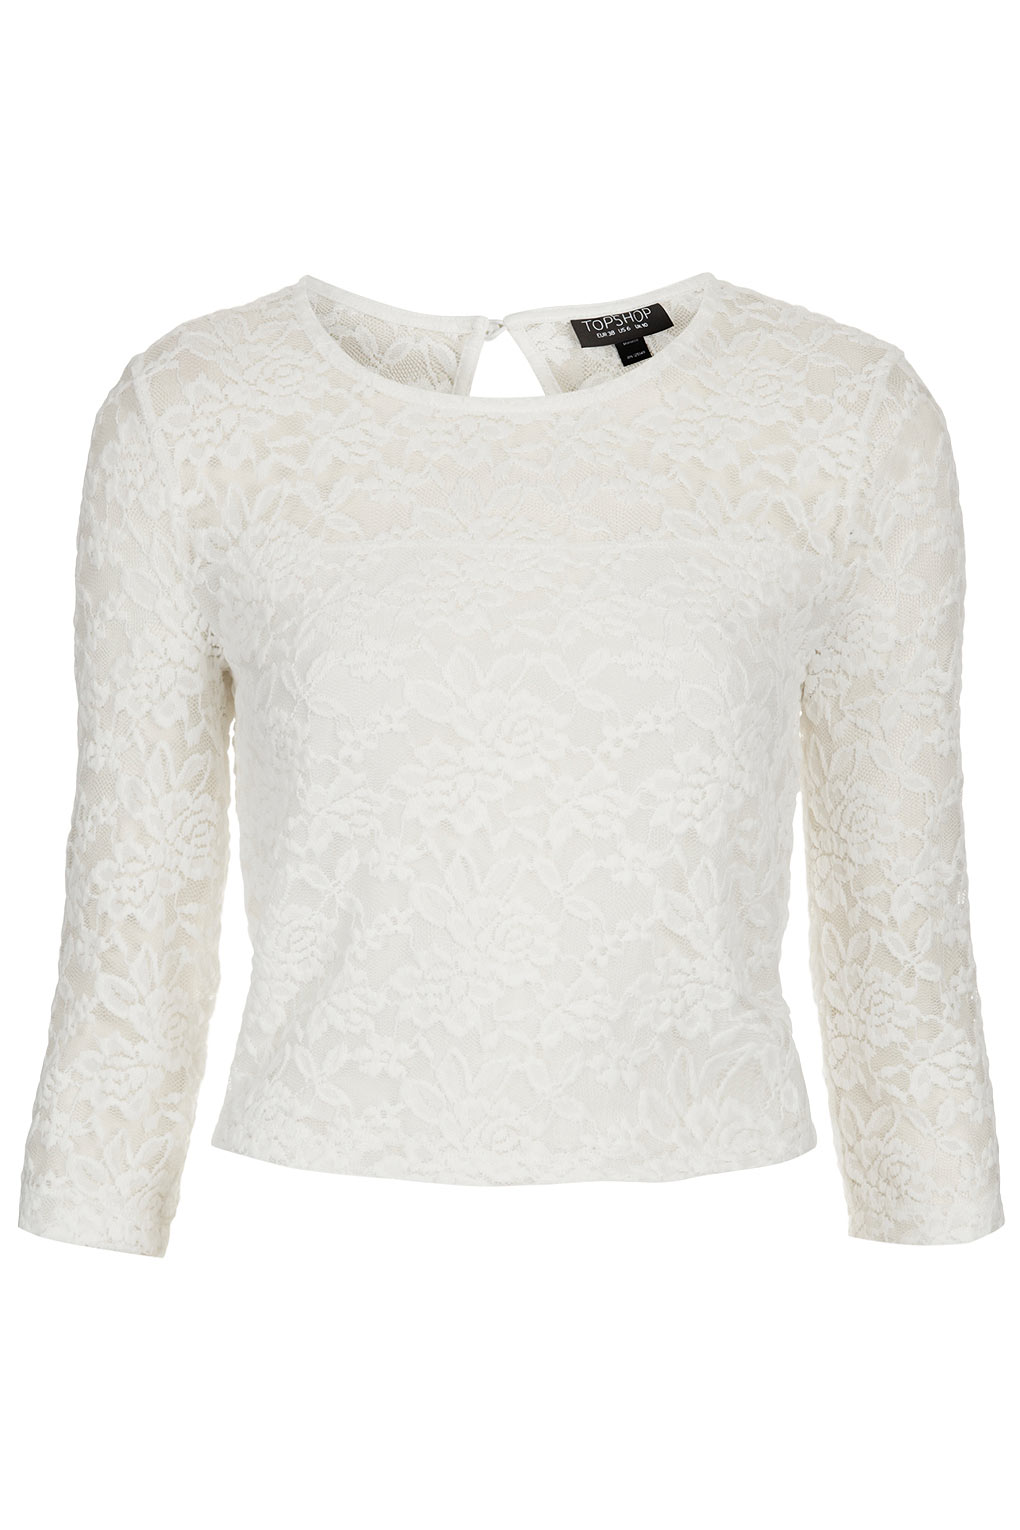 Lyst Topshop Floral Lace Crop Top In White